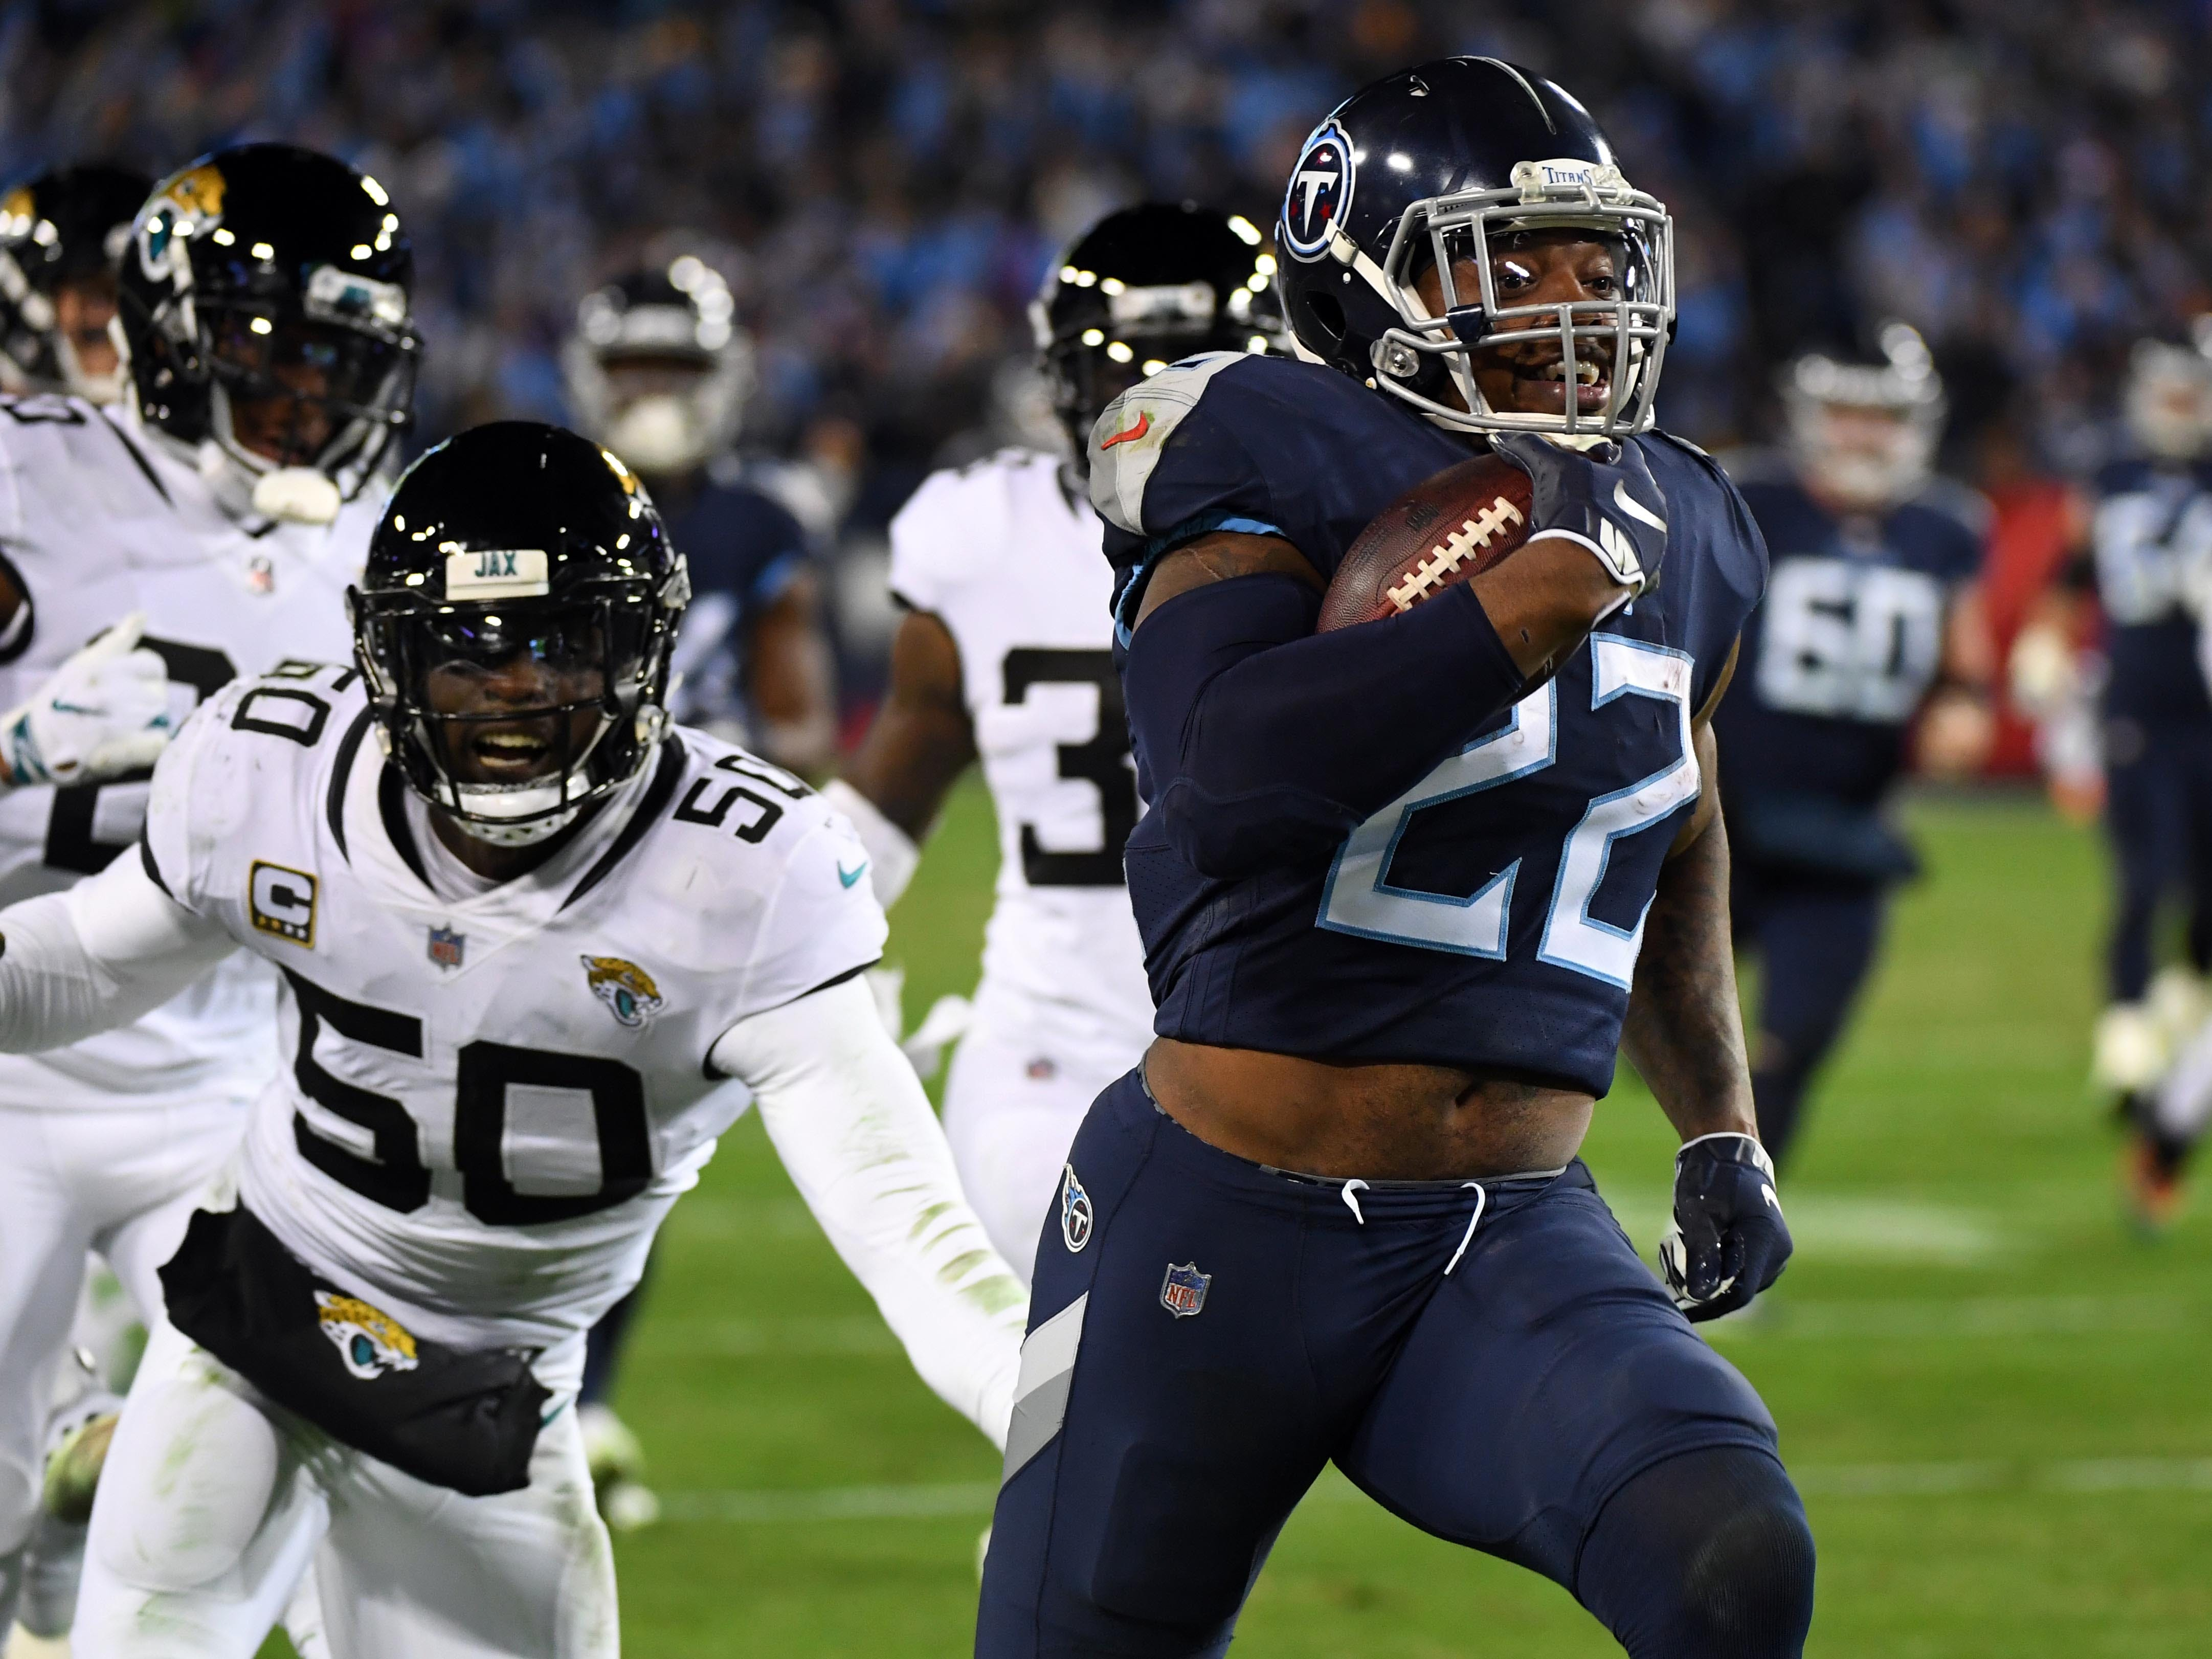 Tennessee Titans running back Derrick Henry runs for a touchdown during the second half against the Jacksonville Jaguars at Nissan Stadium.